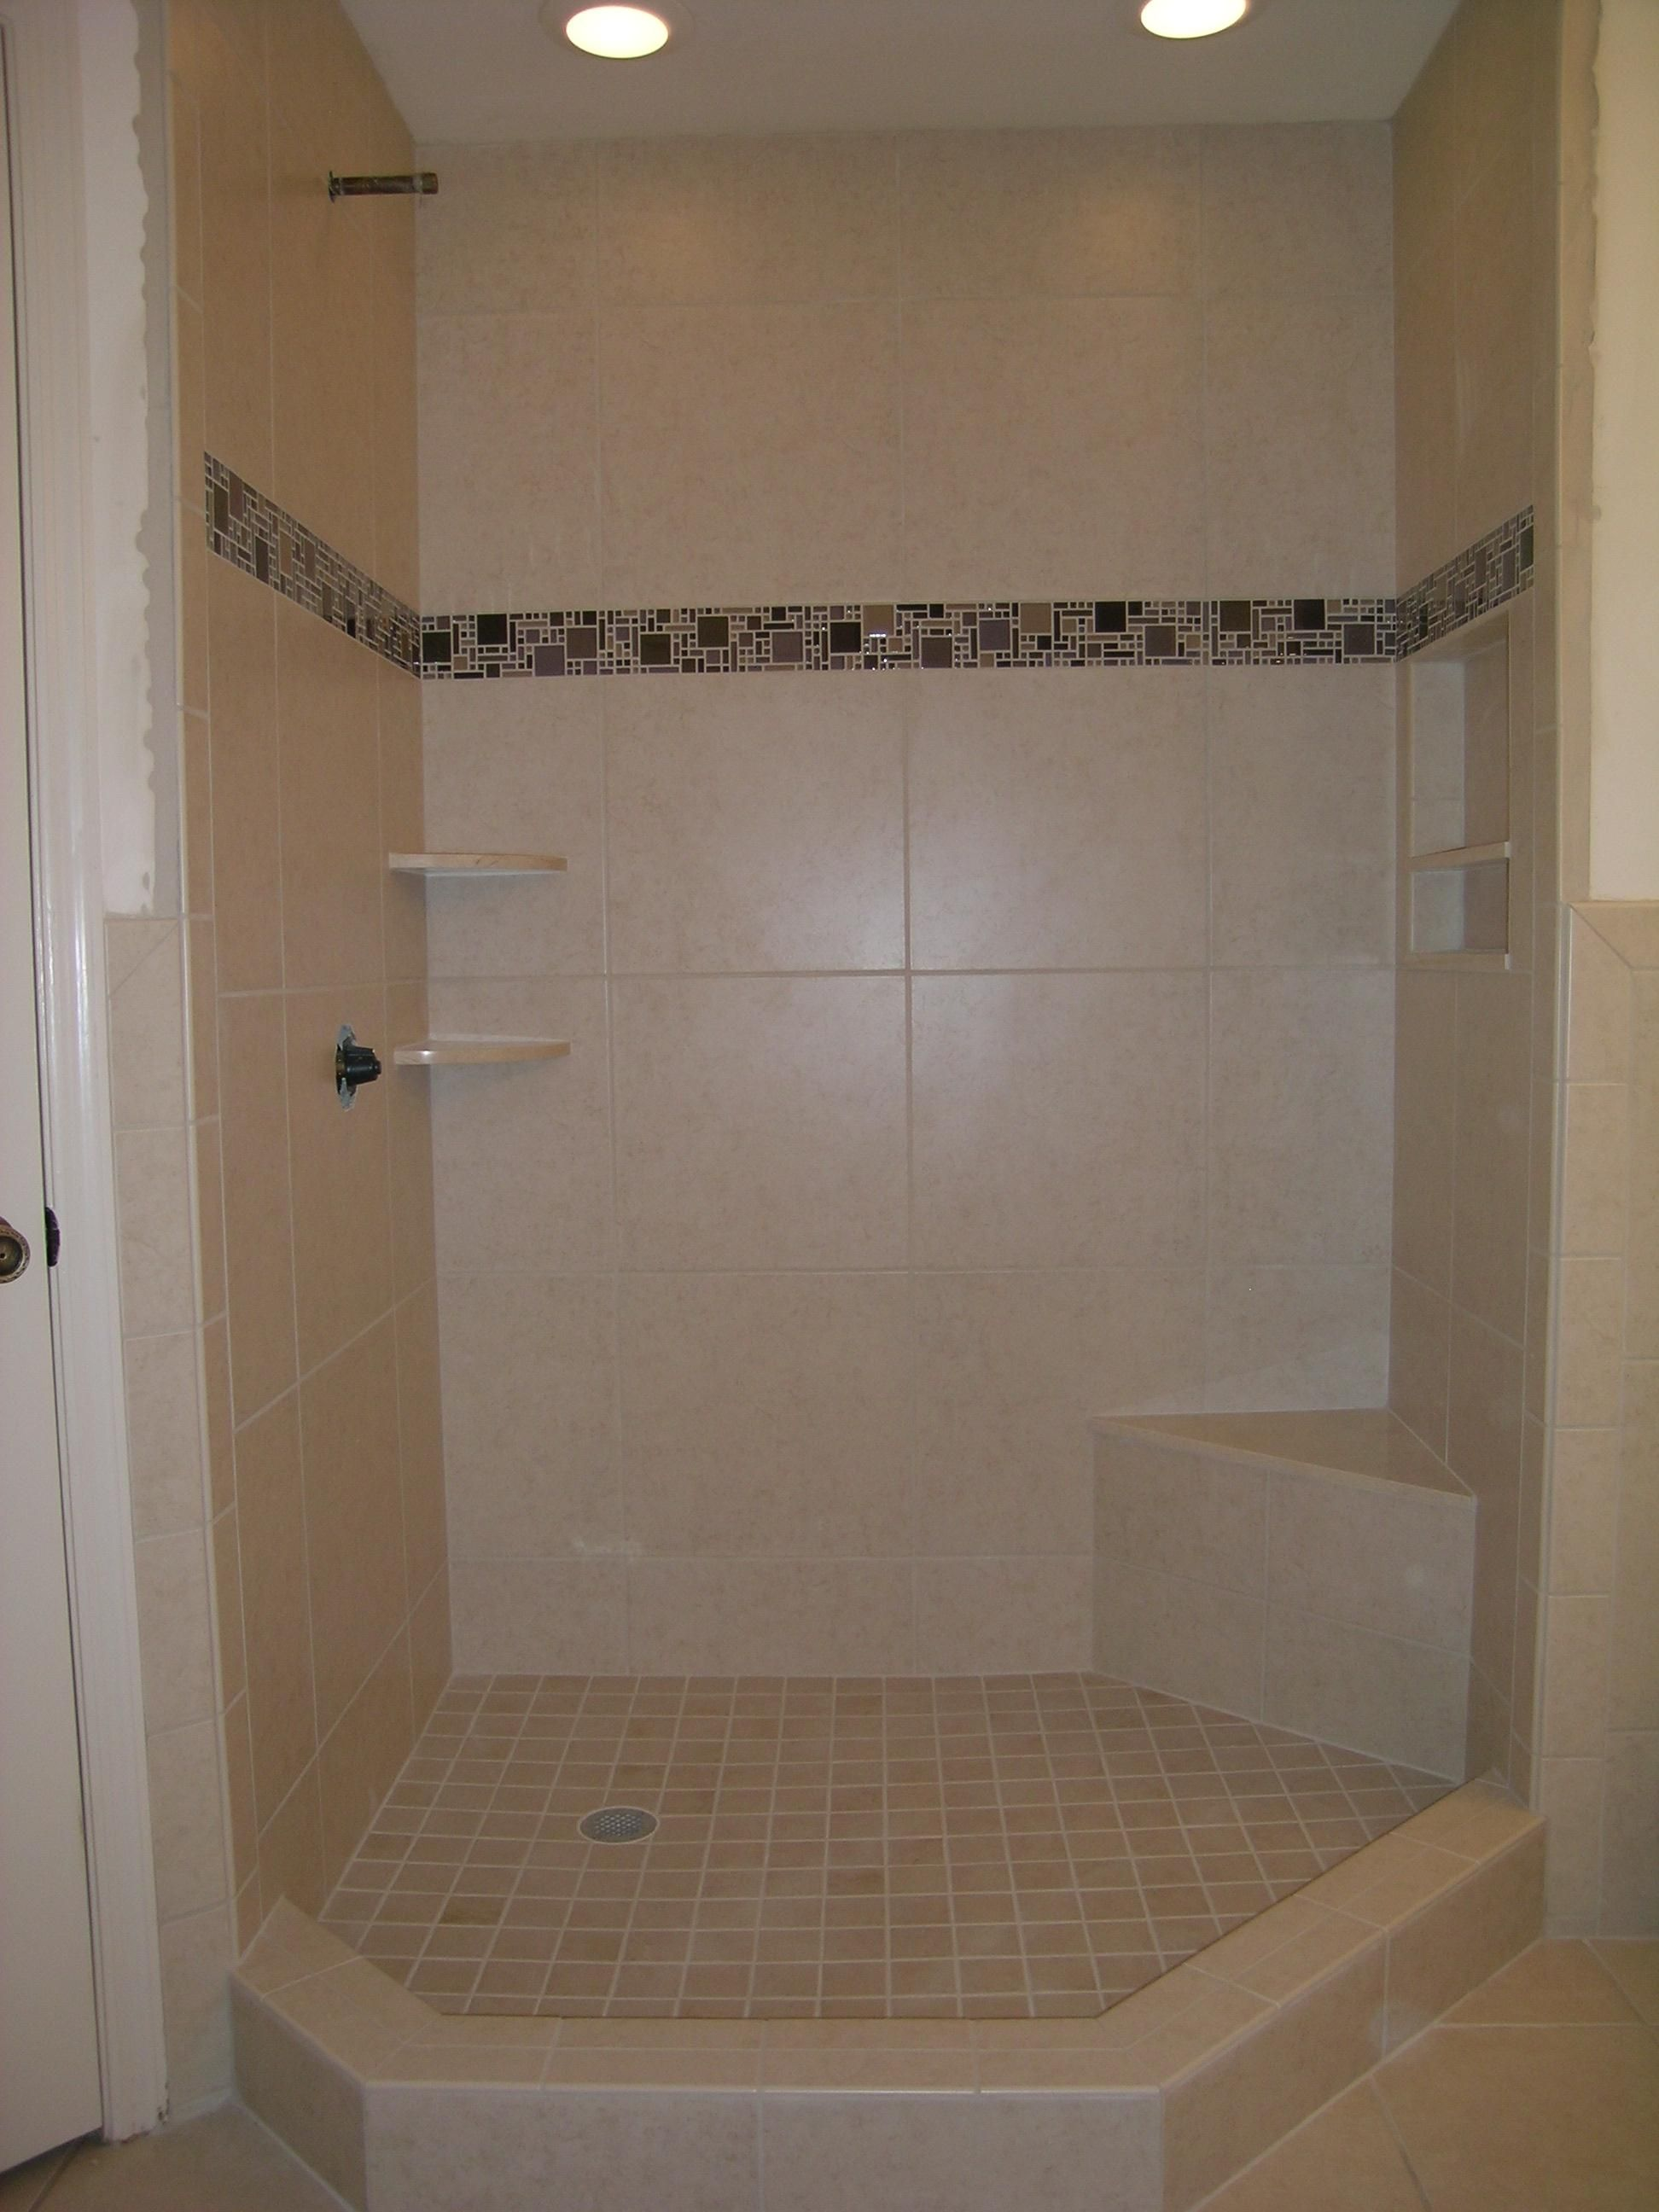 "20""x20"" Porcelain Tile with Glass Mosaic Border. Shower"